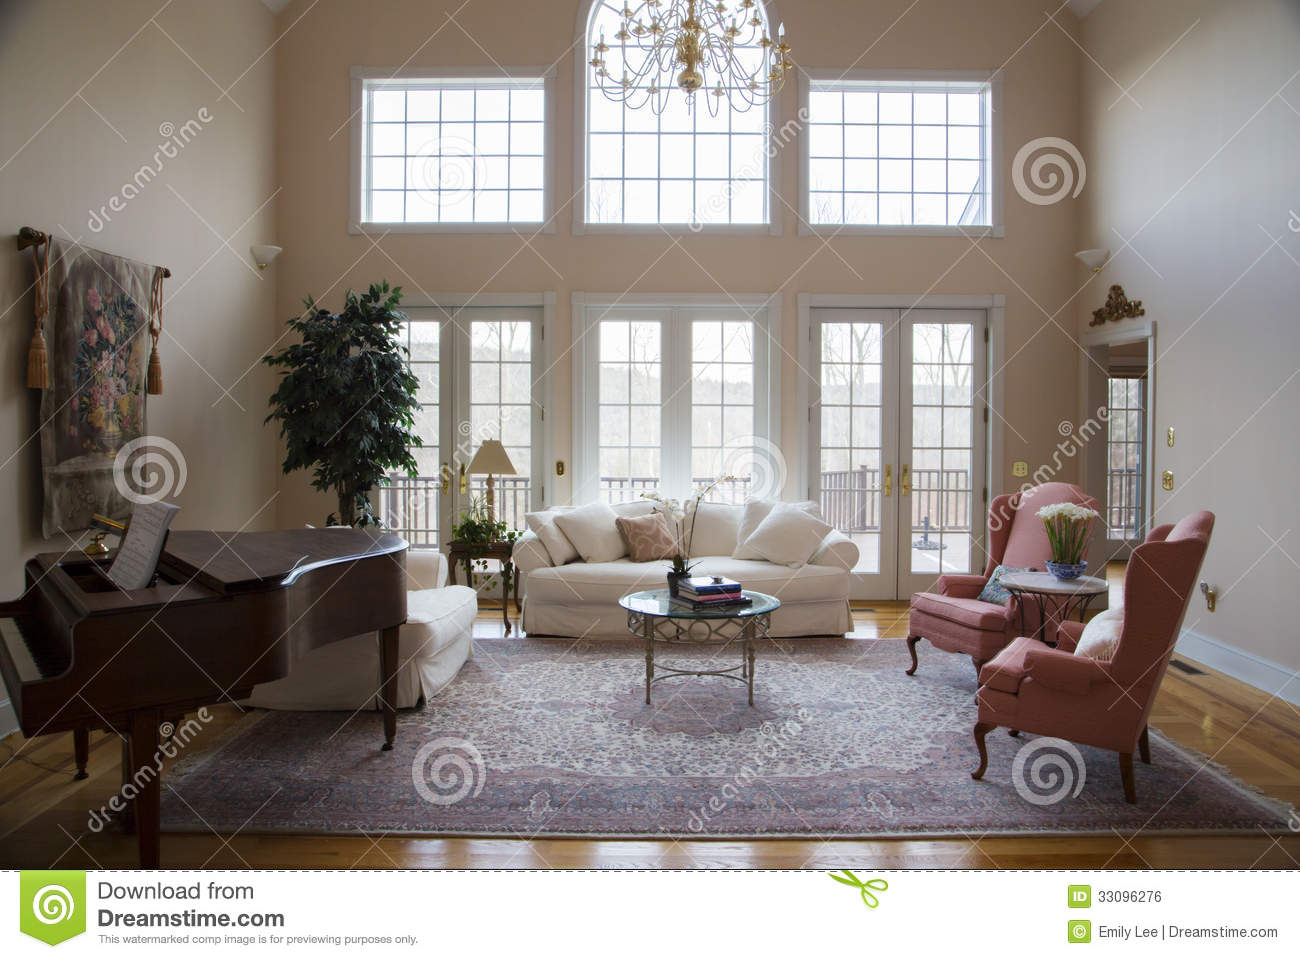 Formal living room royalty free stock image image 33096276 for Bright neutral paint colors